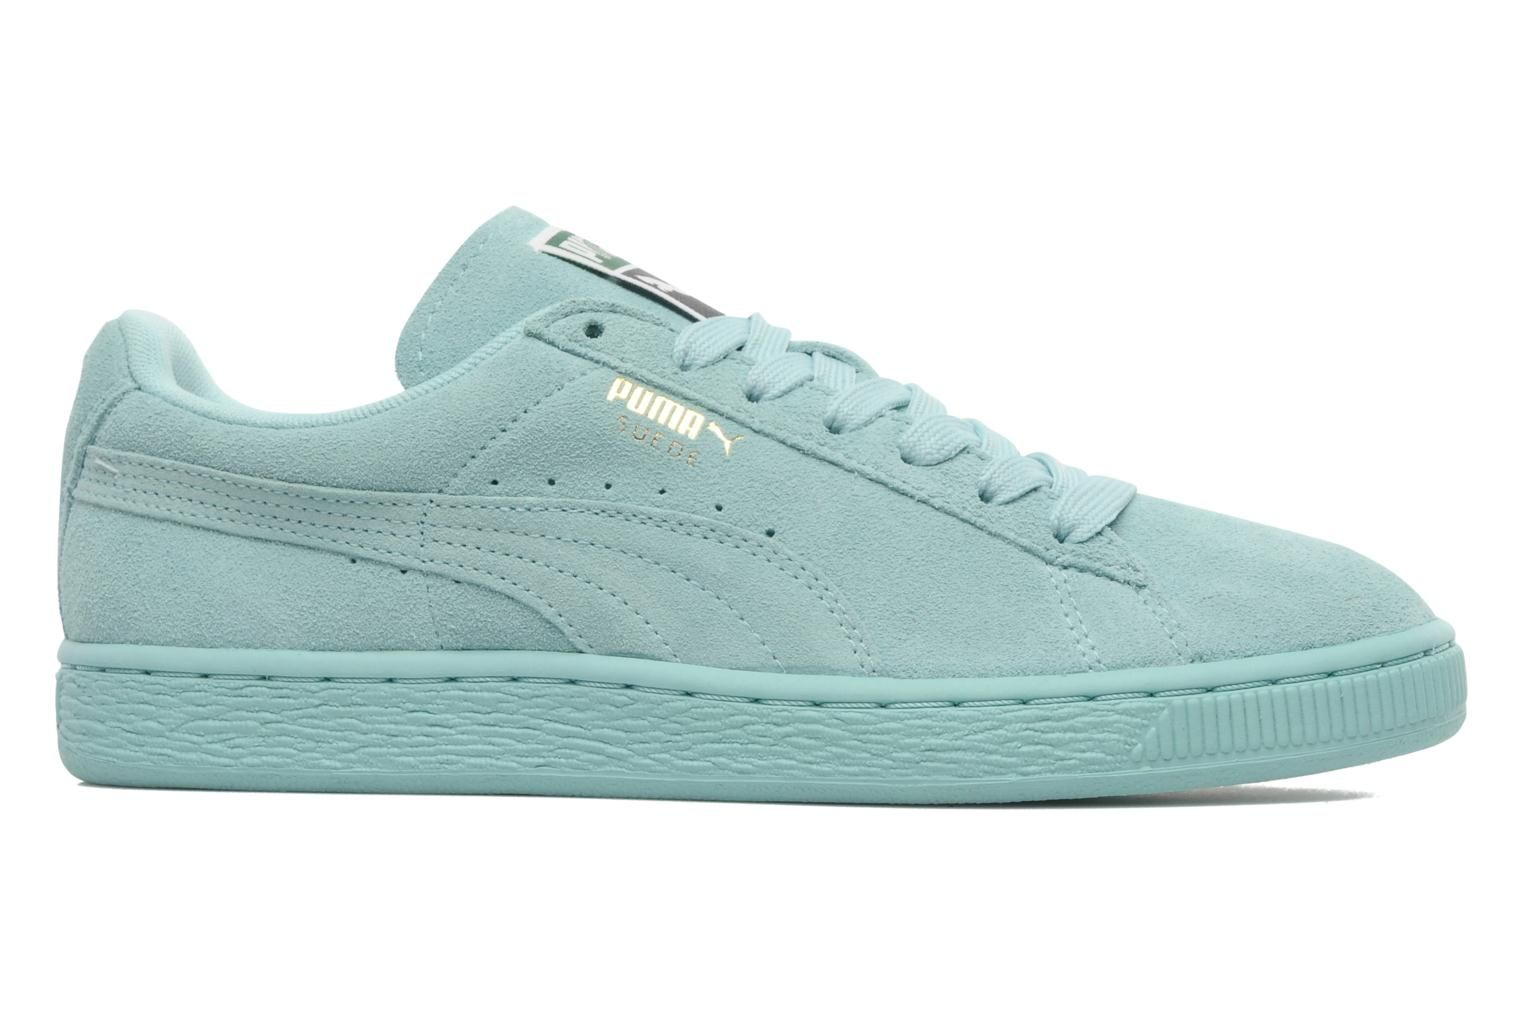 Suede EtcBasket Puma Classic Wn'sSneakers Baskets kXZuPOi